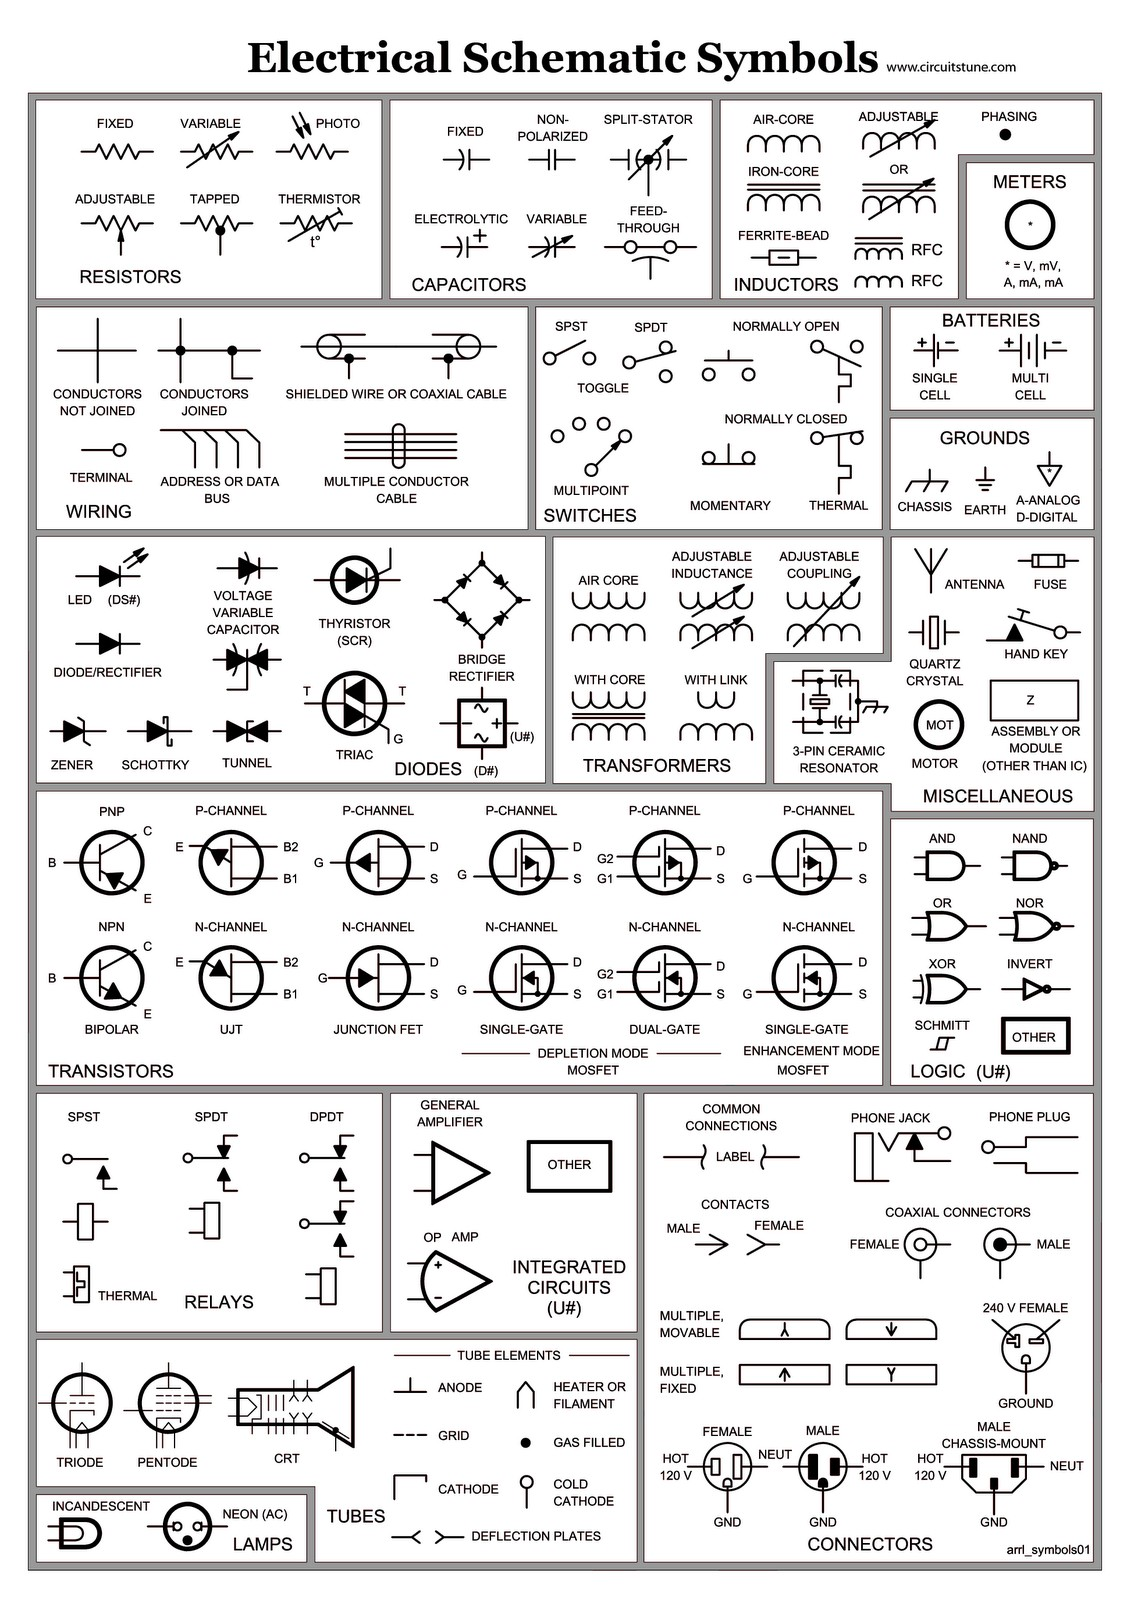 Electrical Schematic Switch Symbols Unique | Wiring Diagram Image